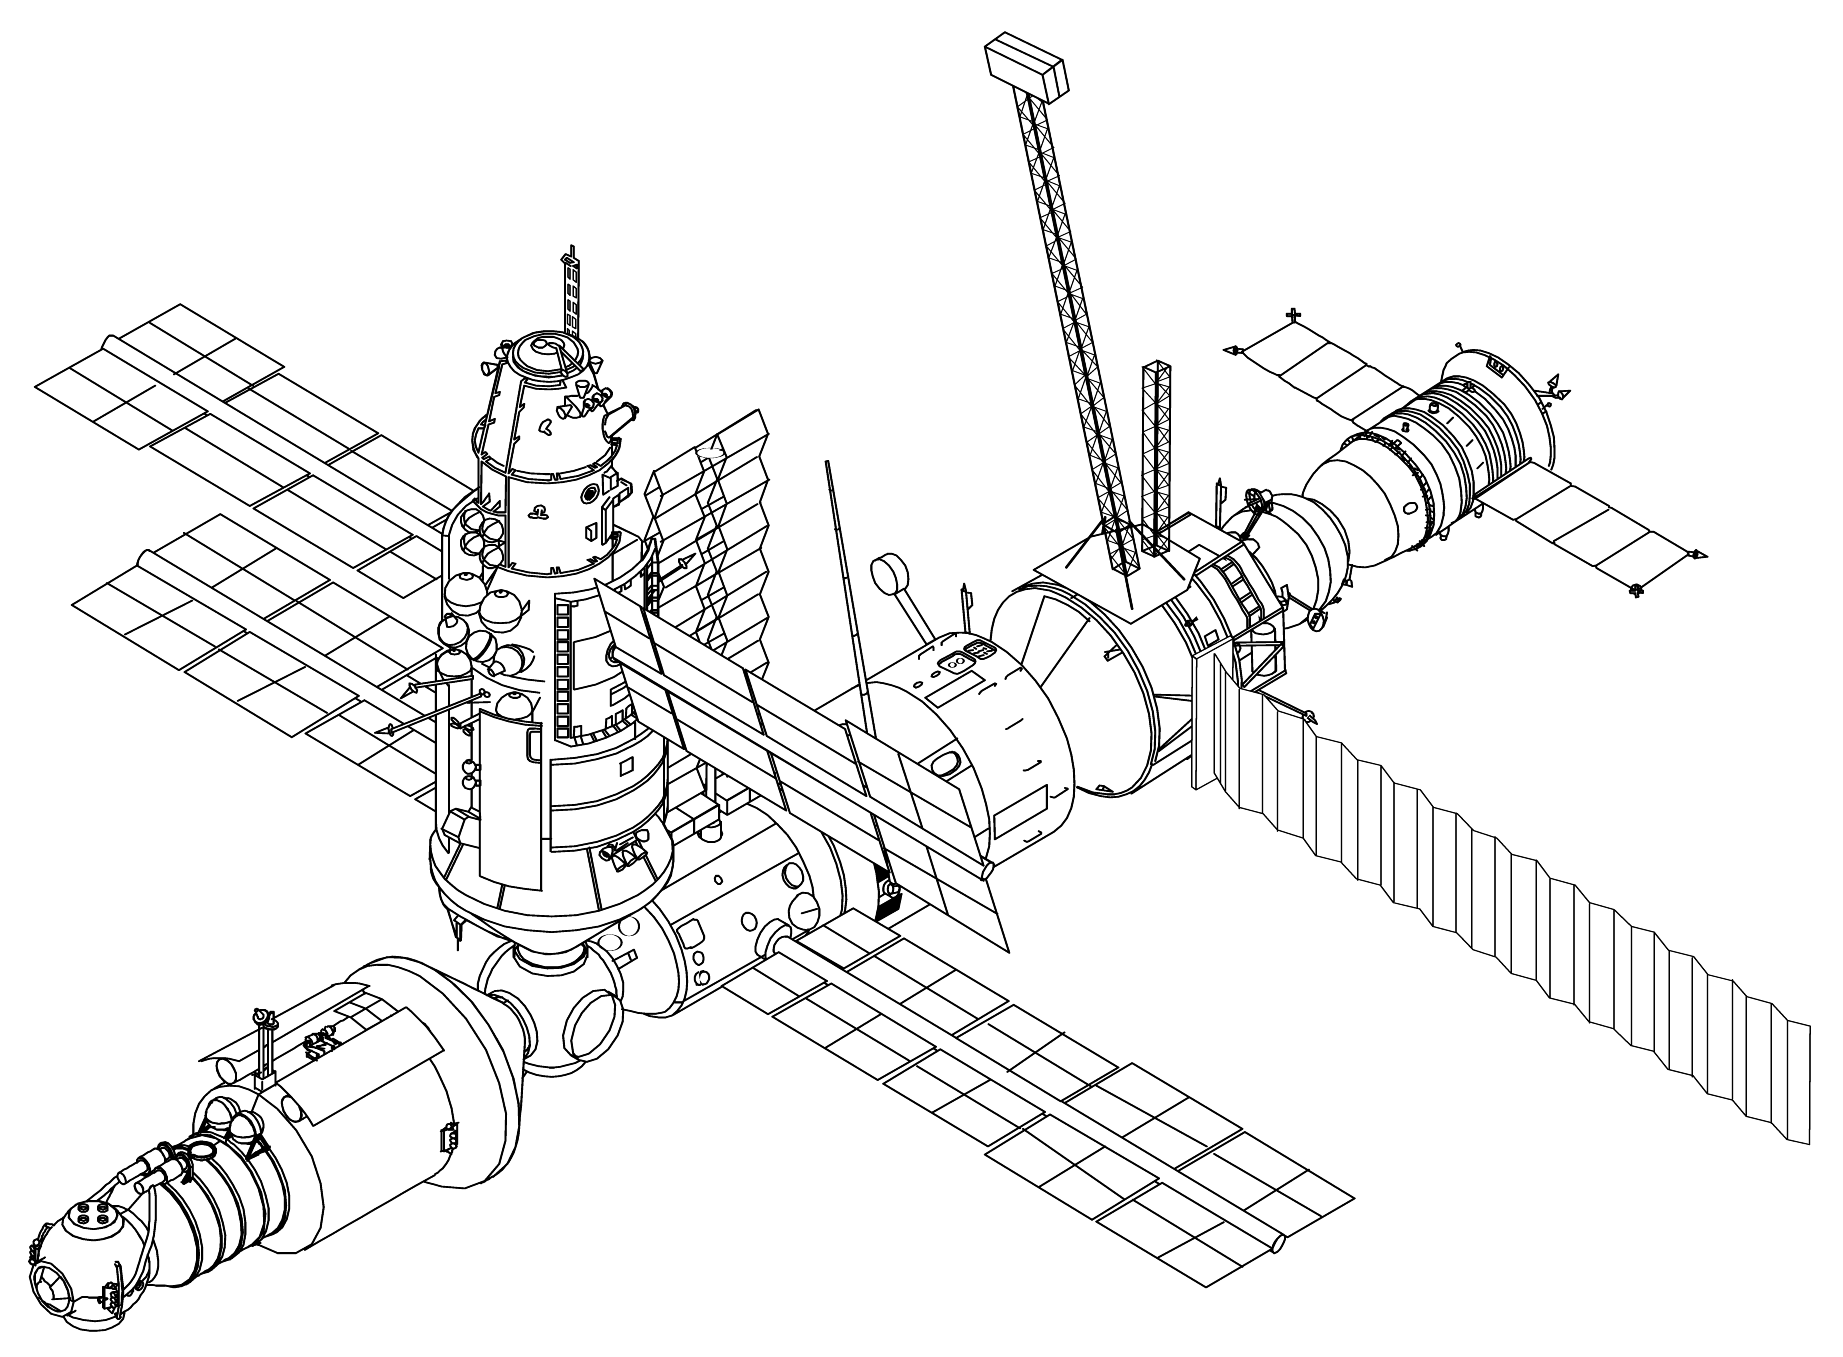 Space Station Dimension Drawing (page 2) - Pics about space